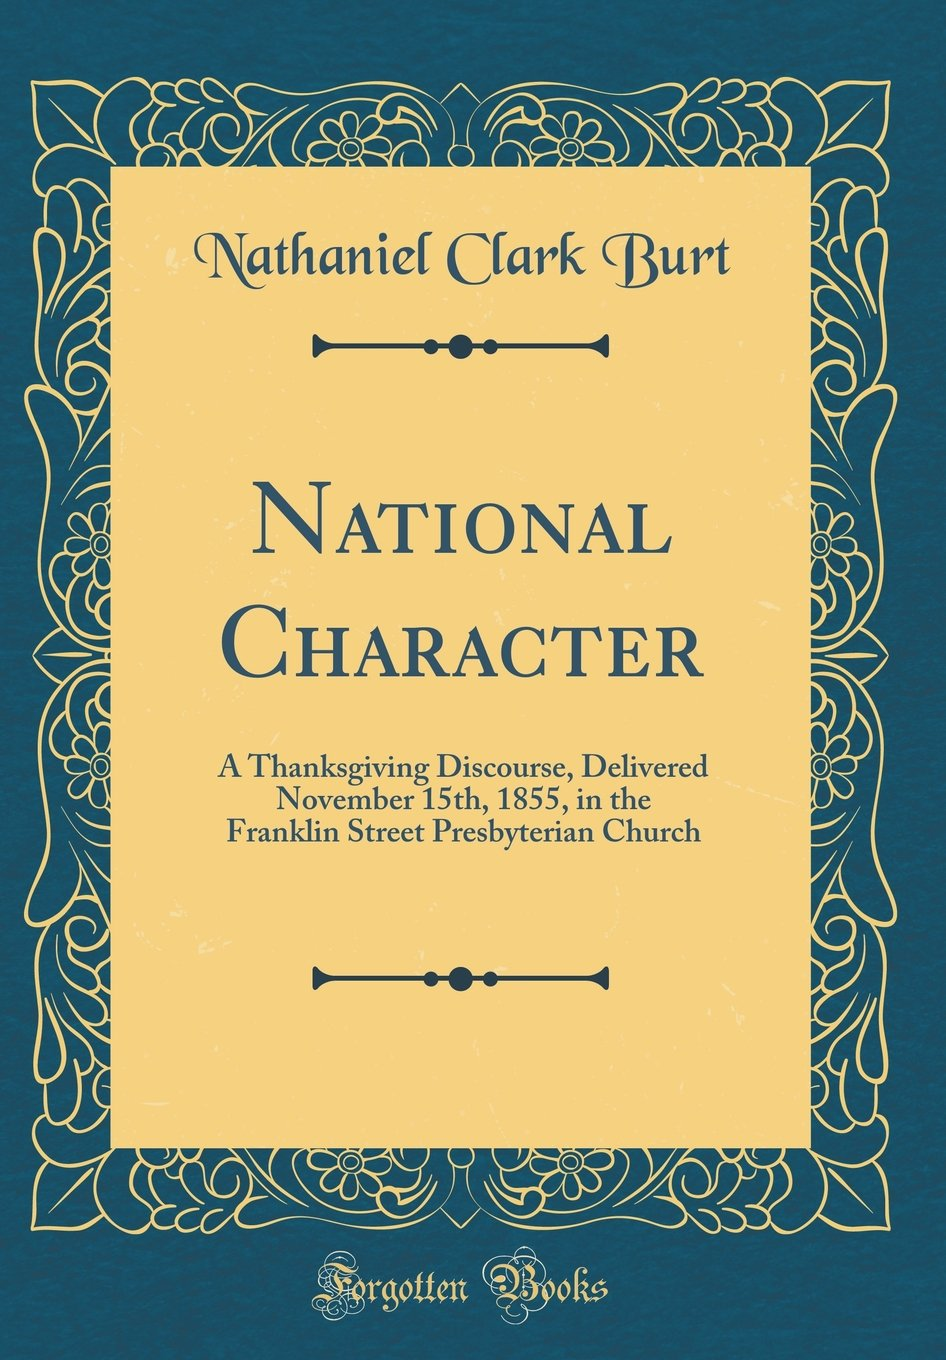 National Character: A Thanksgiving Discourse, Delivered November 15th, 1855, in the Franklin Street Presbyterian Church (Classic Reprint) ebook